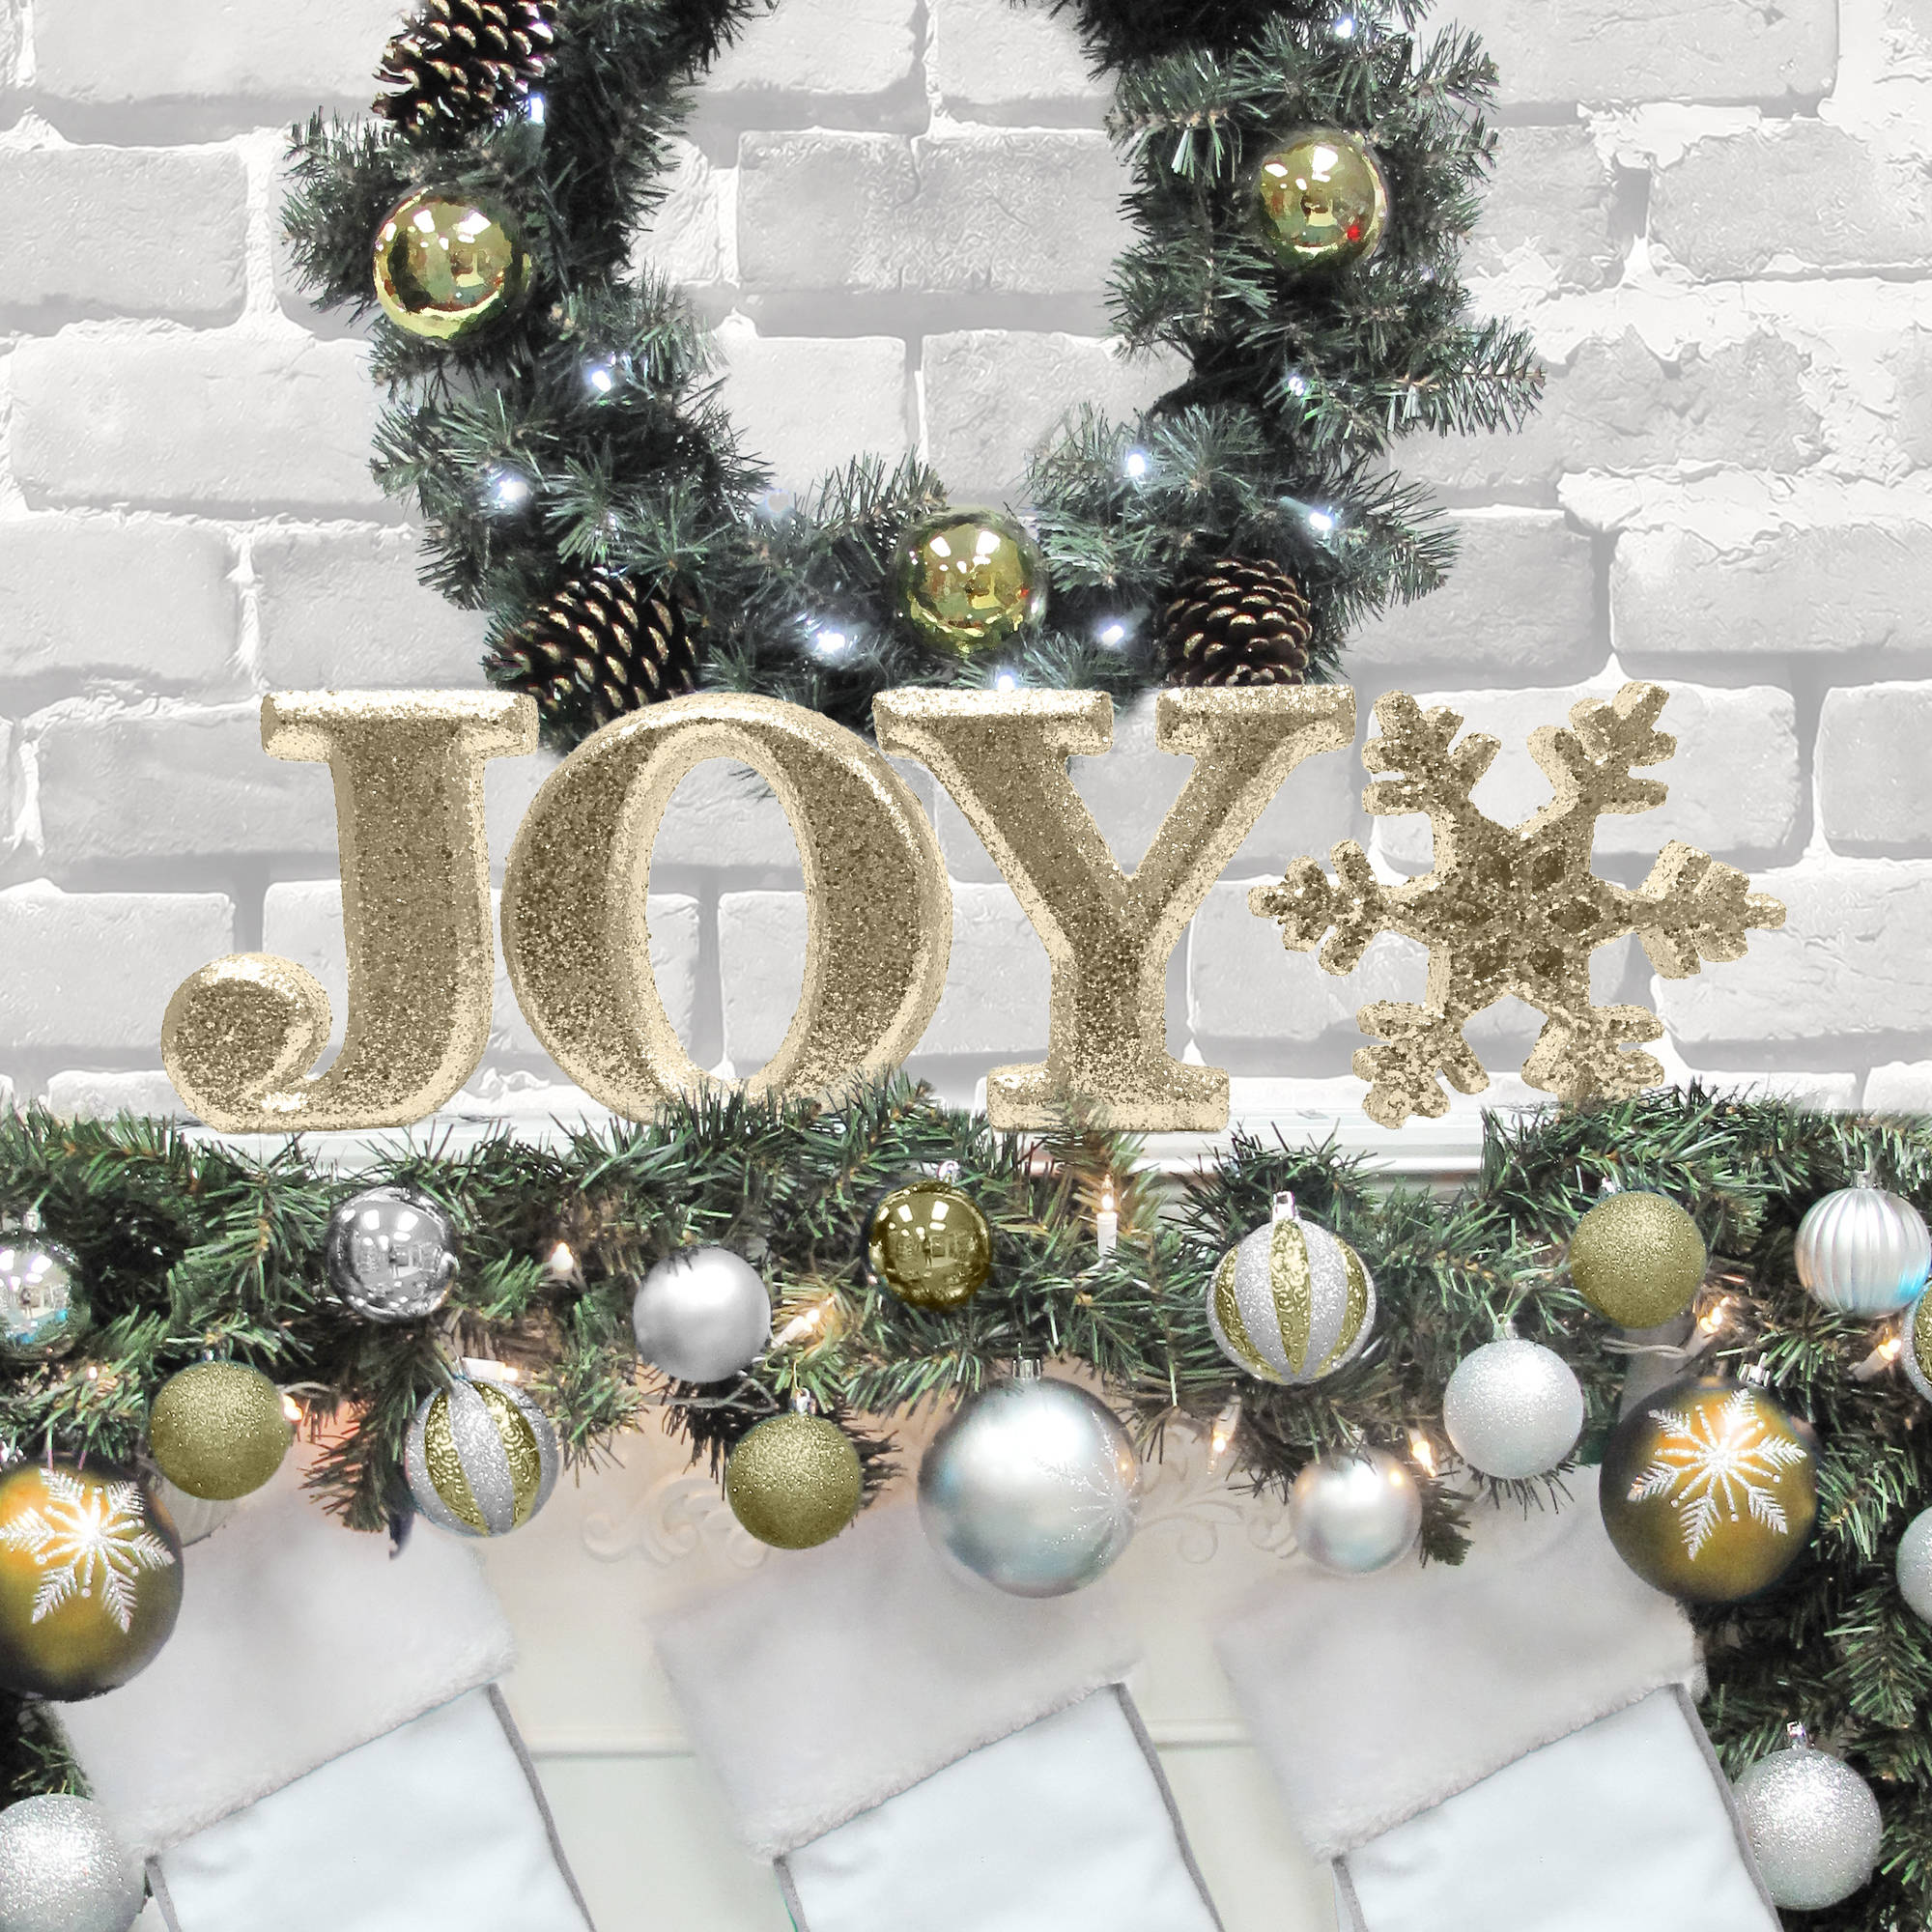 Holiday Time Christmas Decor 8  Decorative JOY Letter Set, Glitter Gold